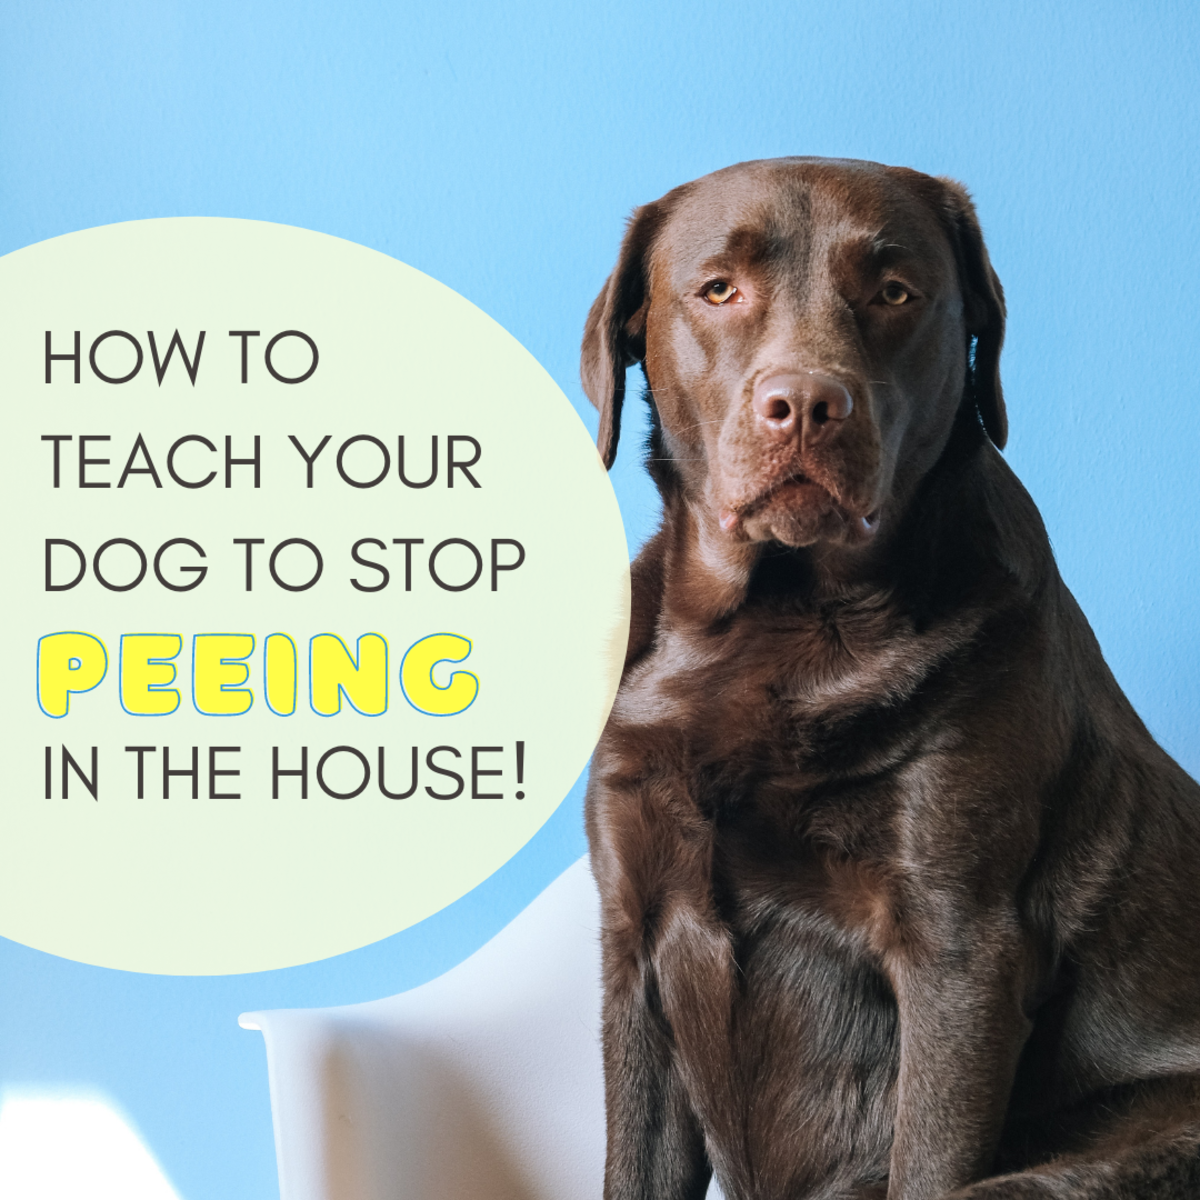 If your dog is no longer a puppy but continues to piddle in the house like one, here are some tips to help you.